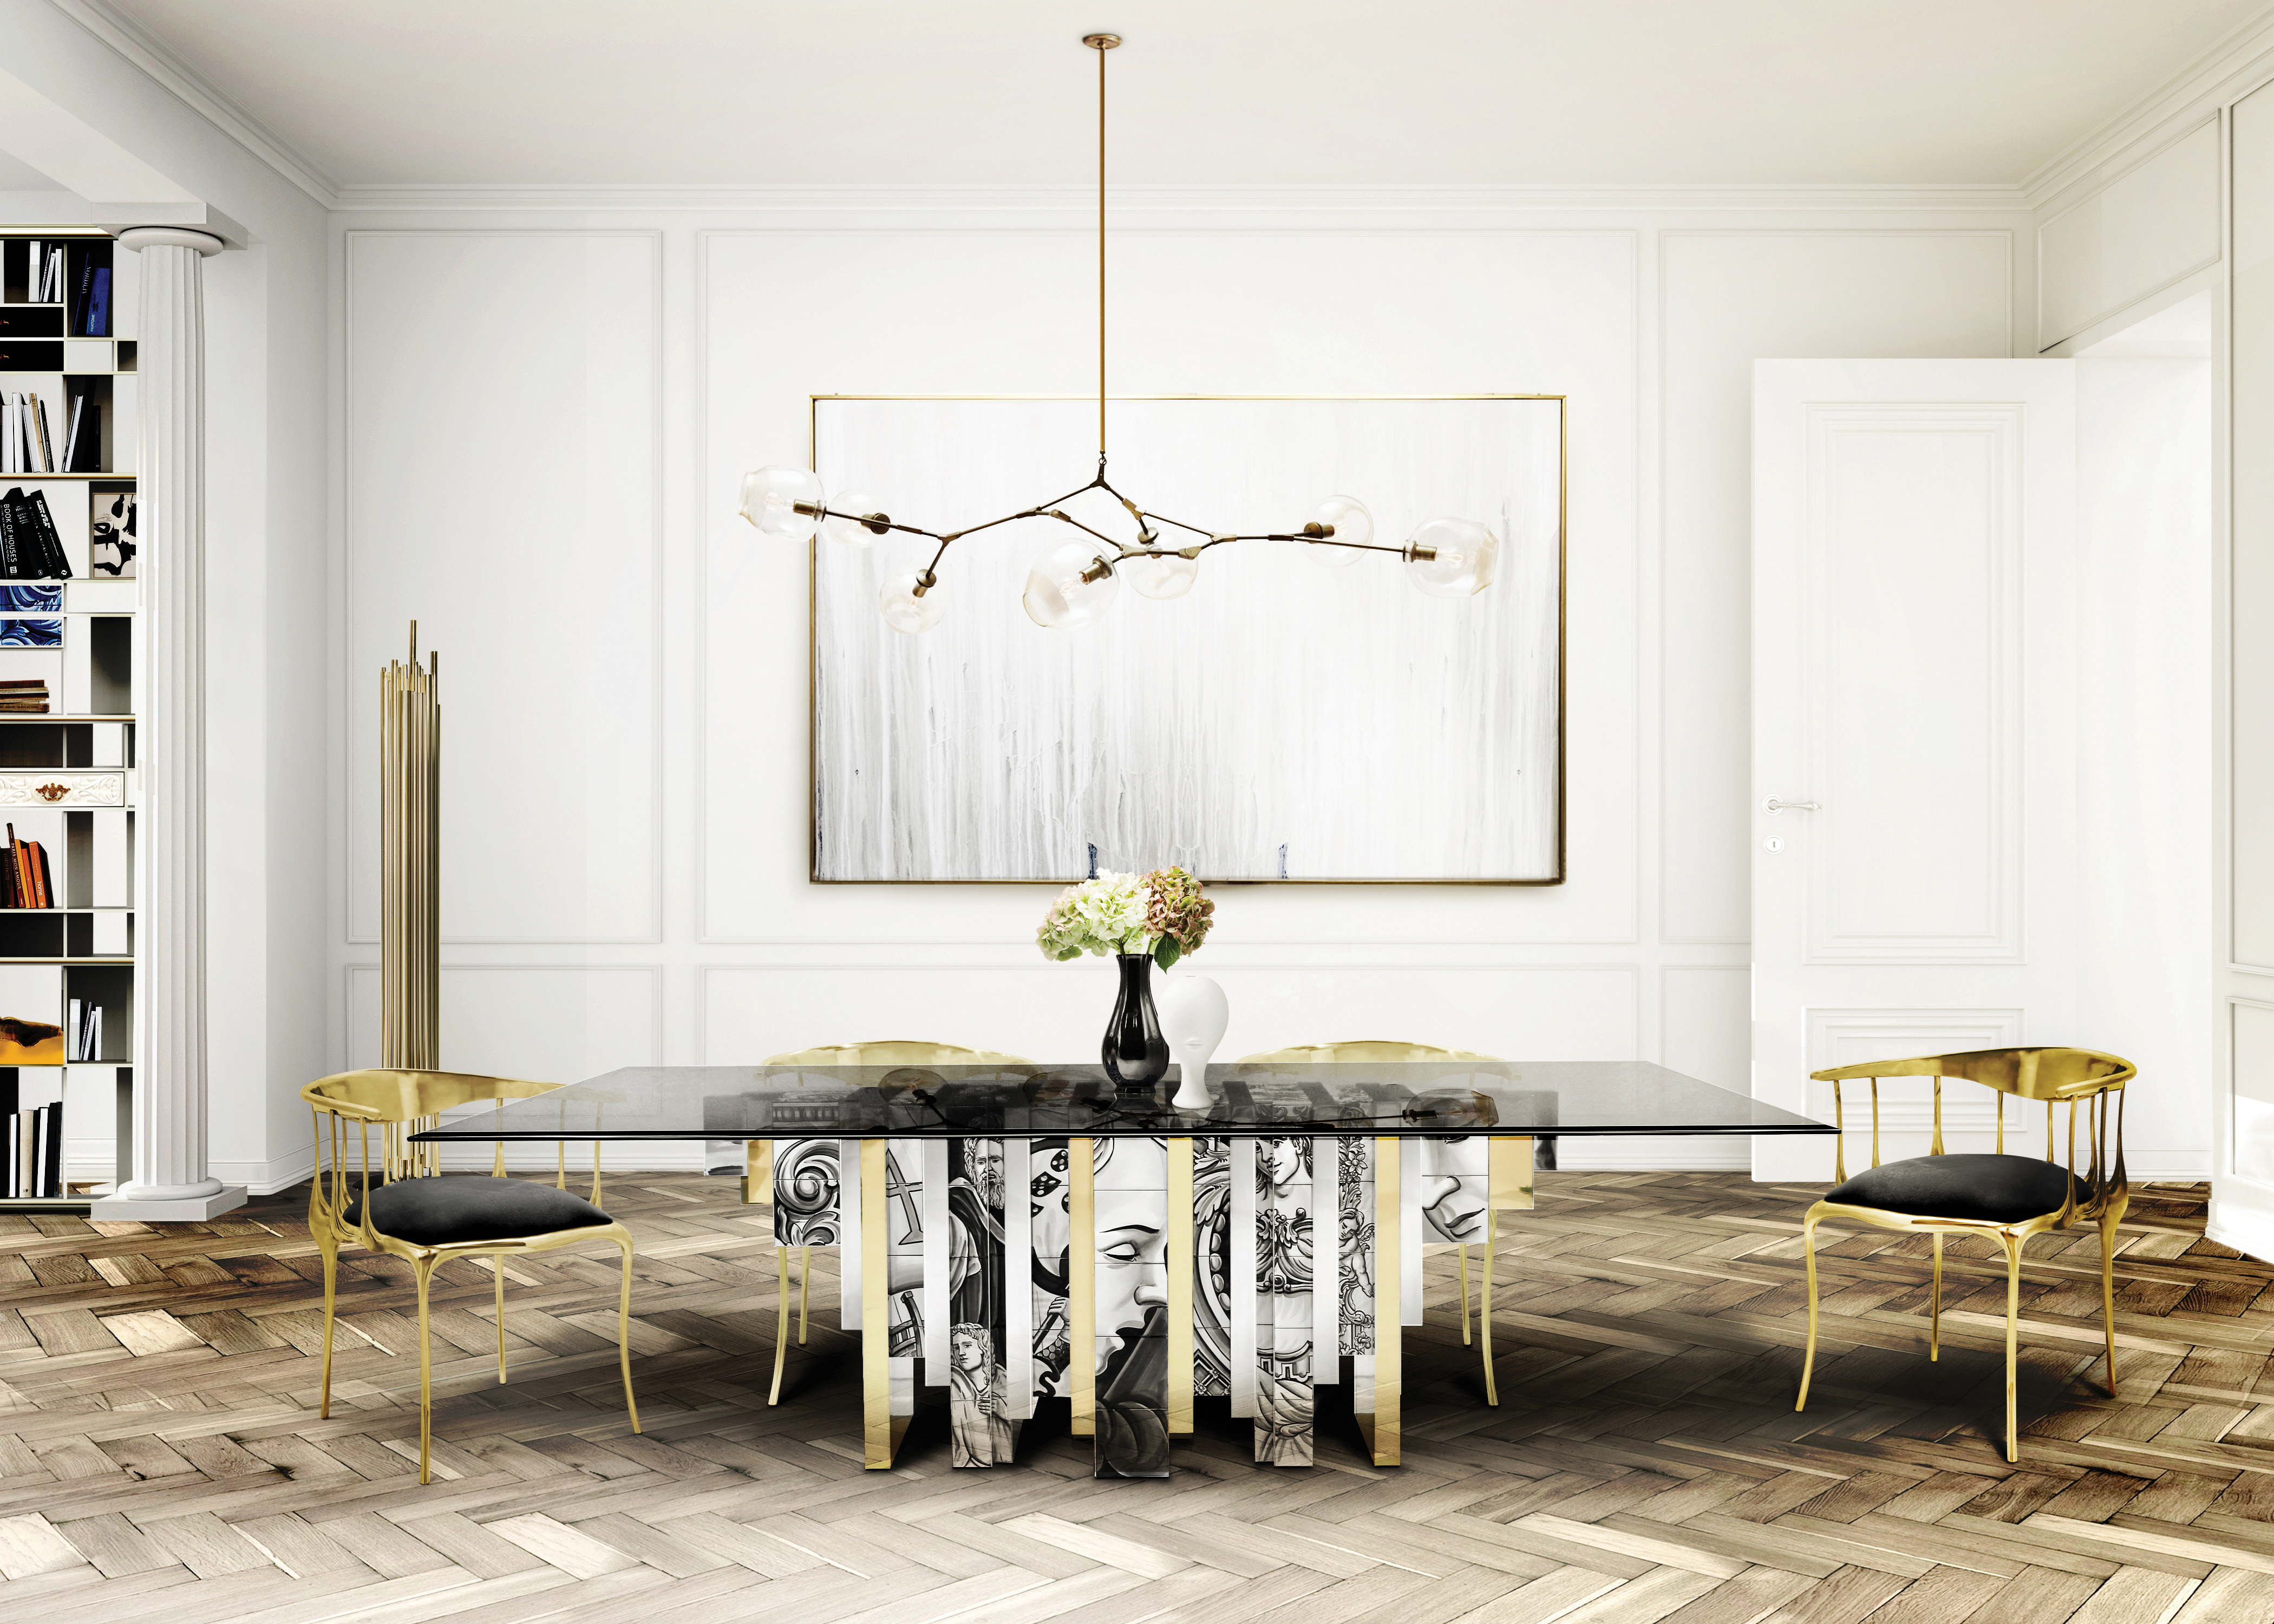 Dining Room Ideas For a Dazzling Dinner dining room ideas Dining Room Ideas For a Dazzling Dinner Dining Room Ideas For a Dazzling Dinner 4